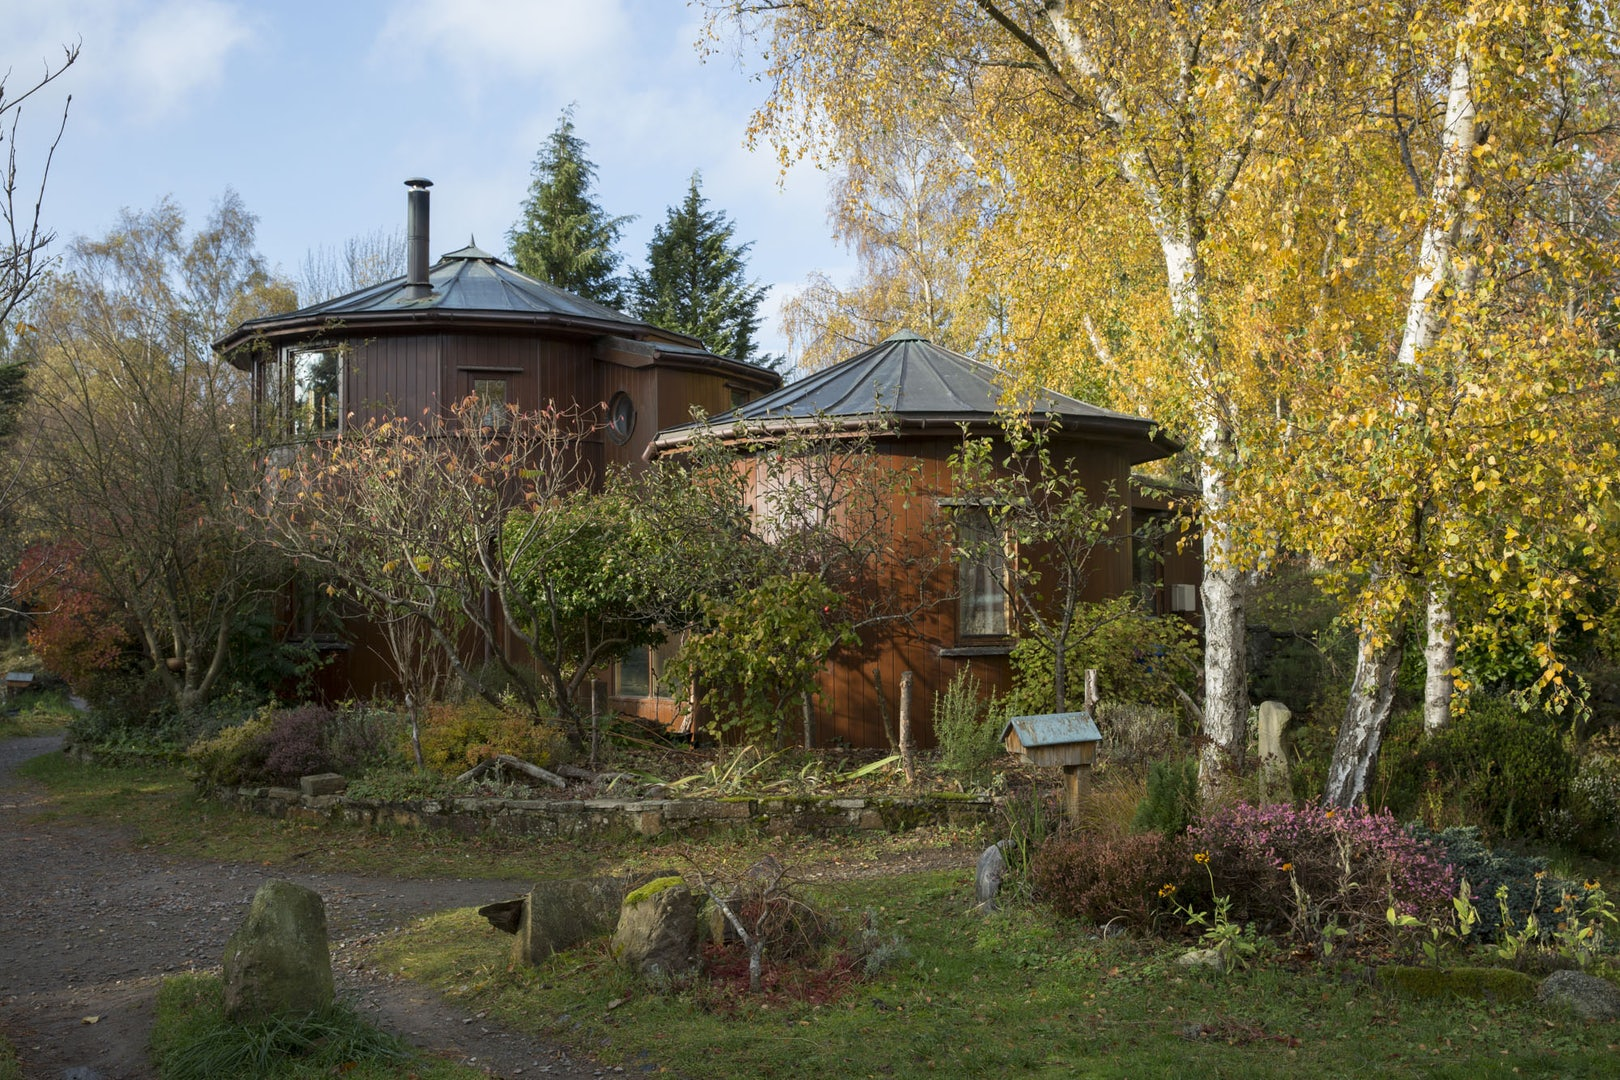 two huts at the The Barrel B&B in Findhorn Scotland